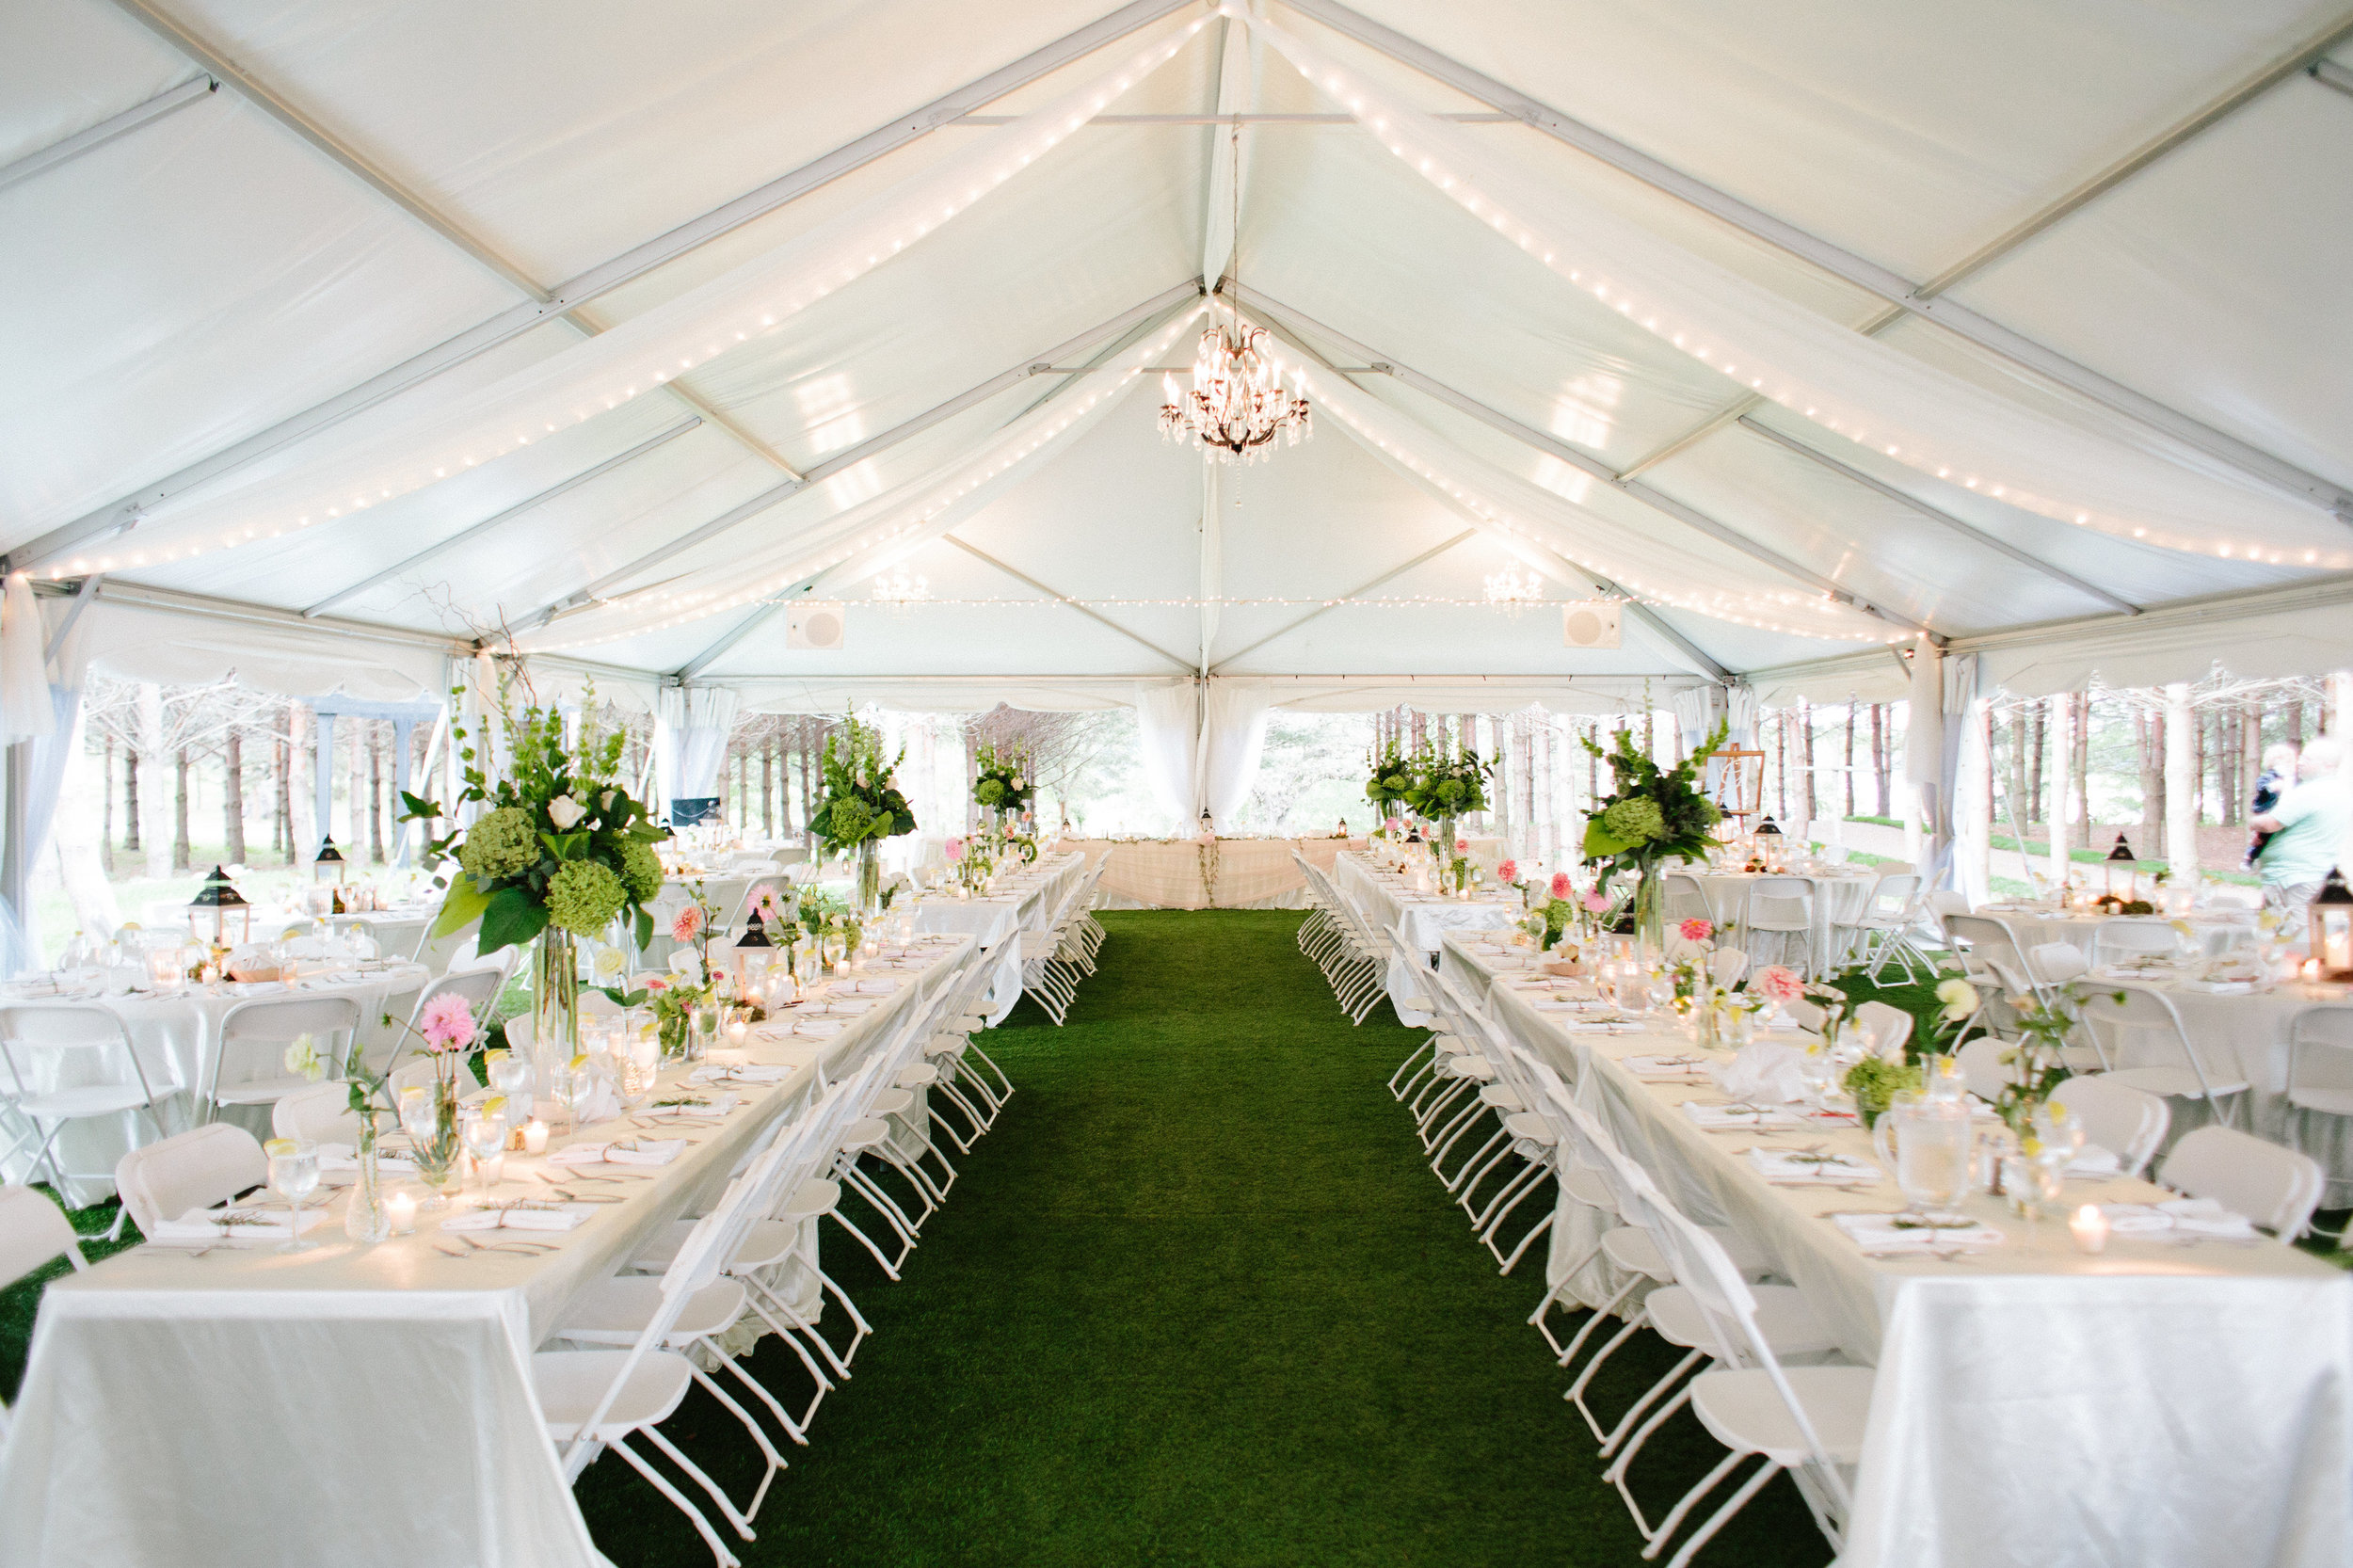 The tents at Stonewall Farms